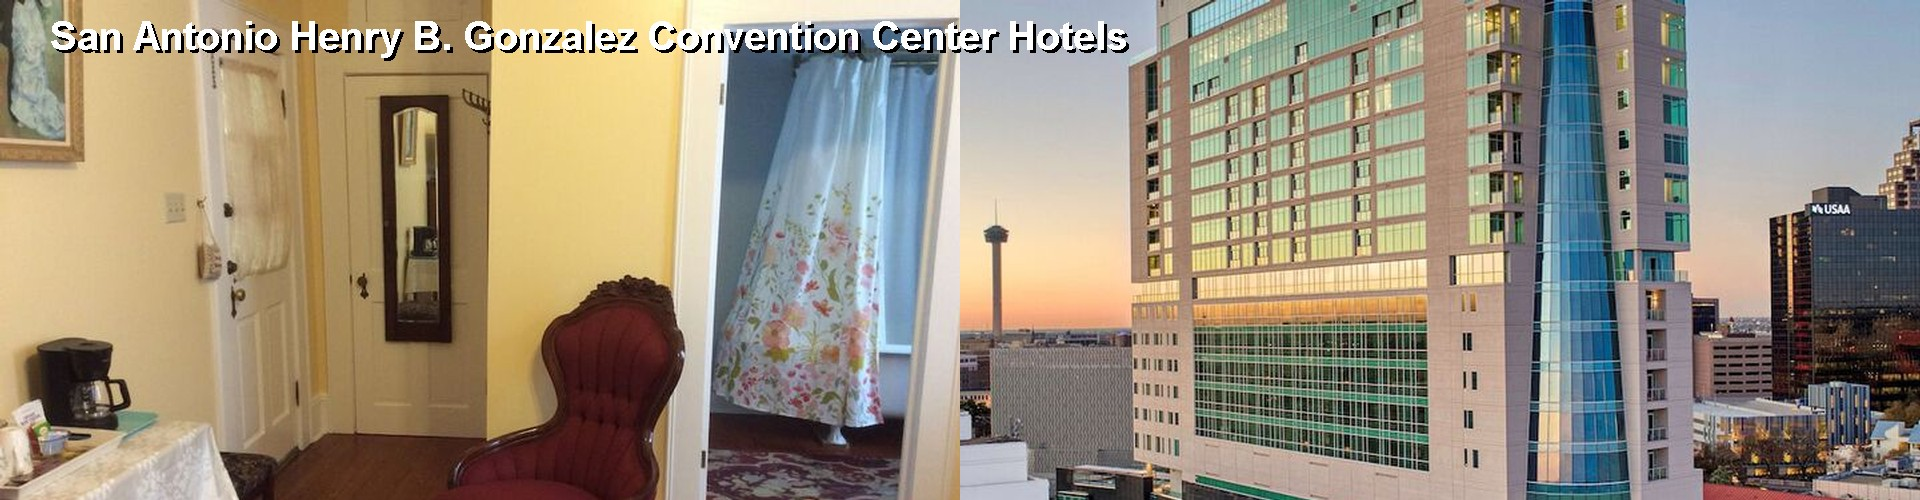 5 Best Hotels near San Antonio Henry B. Gonzalez Convention Center